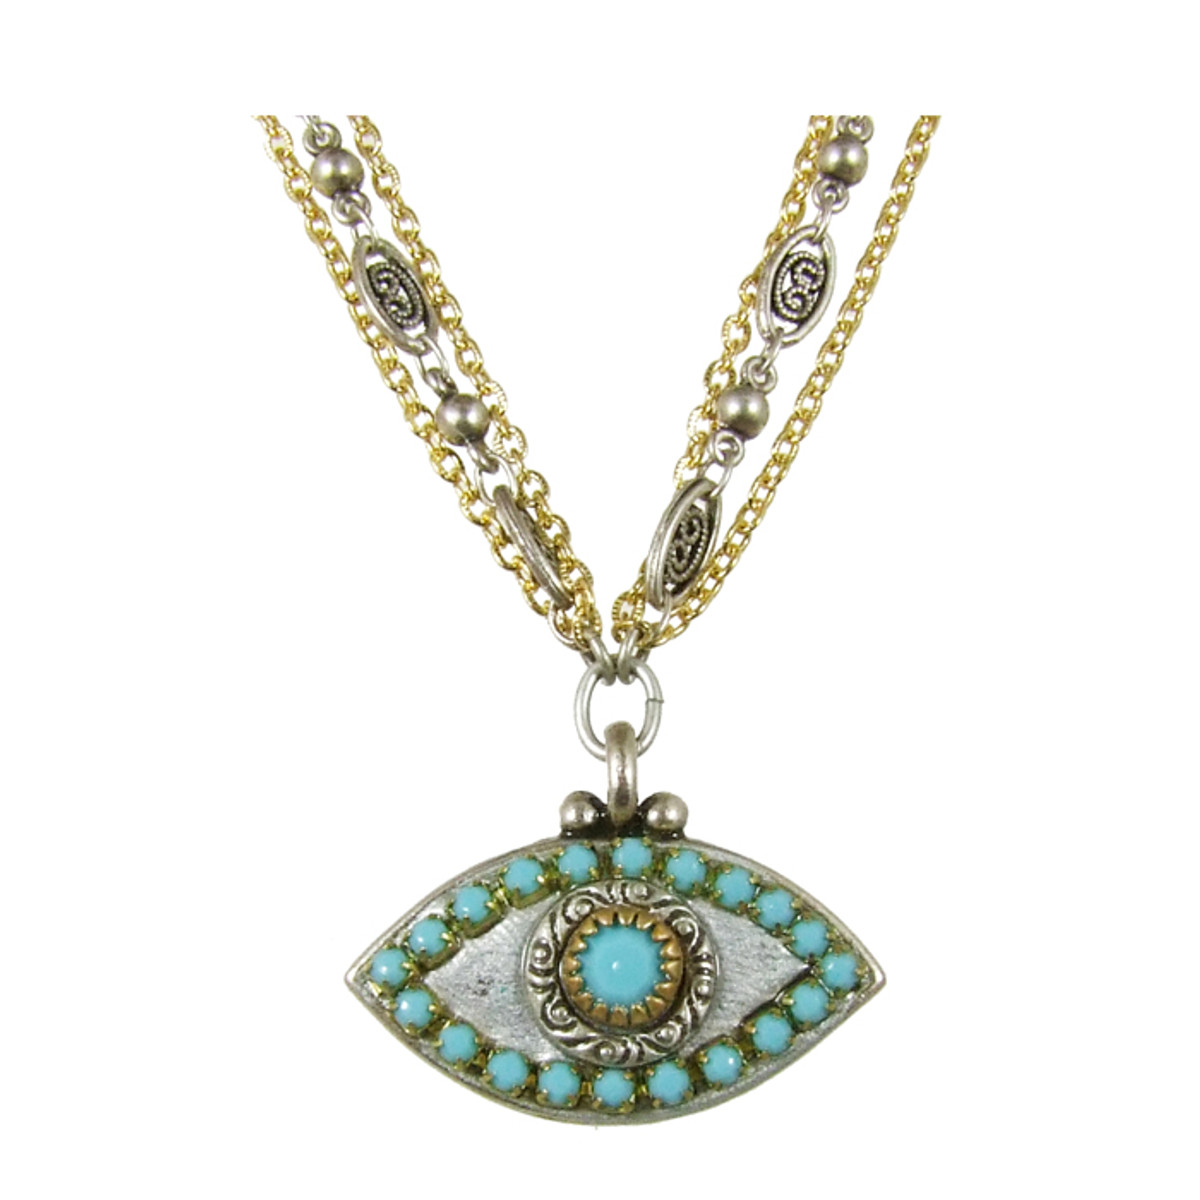 Evil Eye Necklace - Medium Eye With Blue Center & Edges